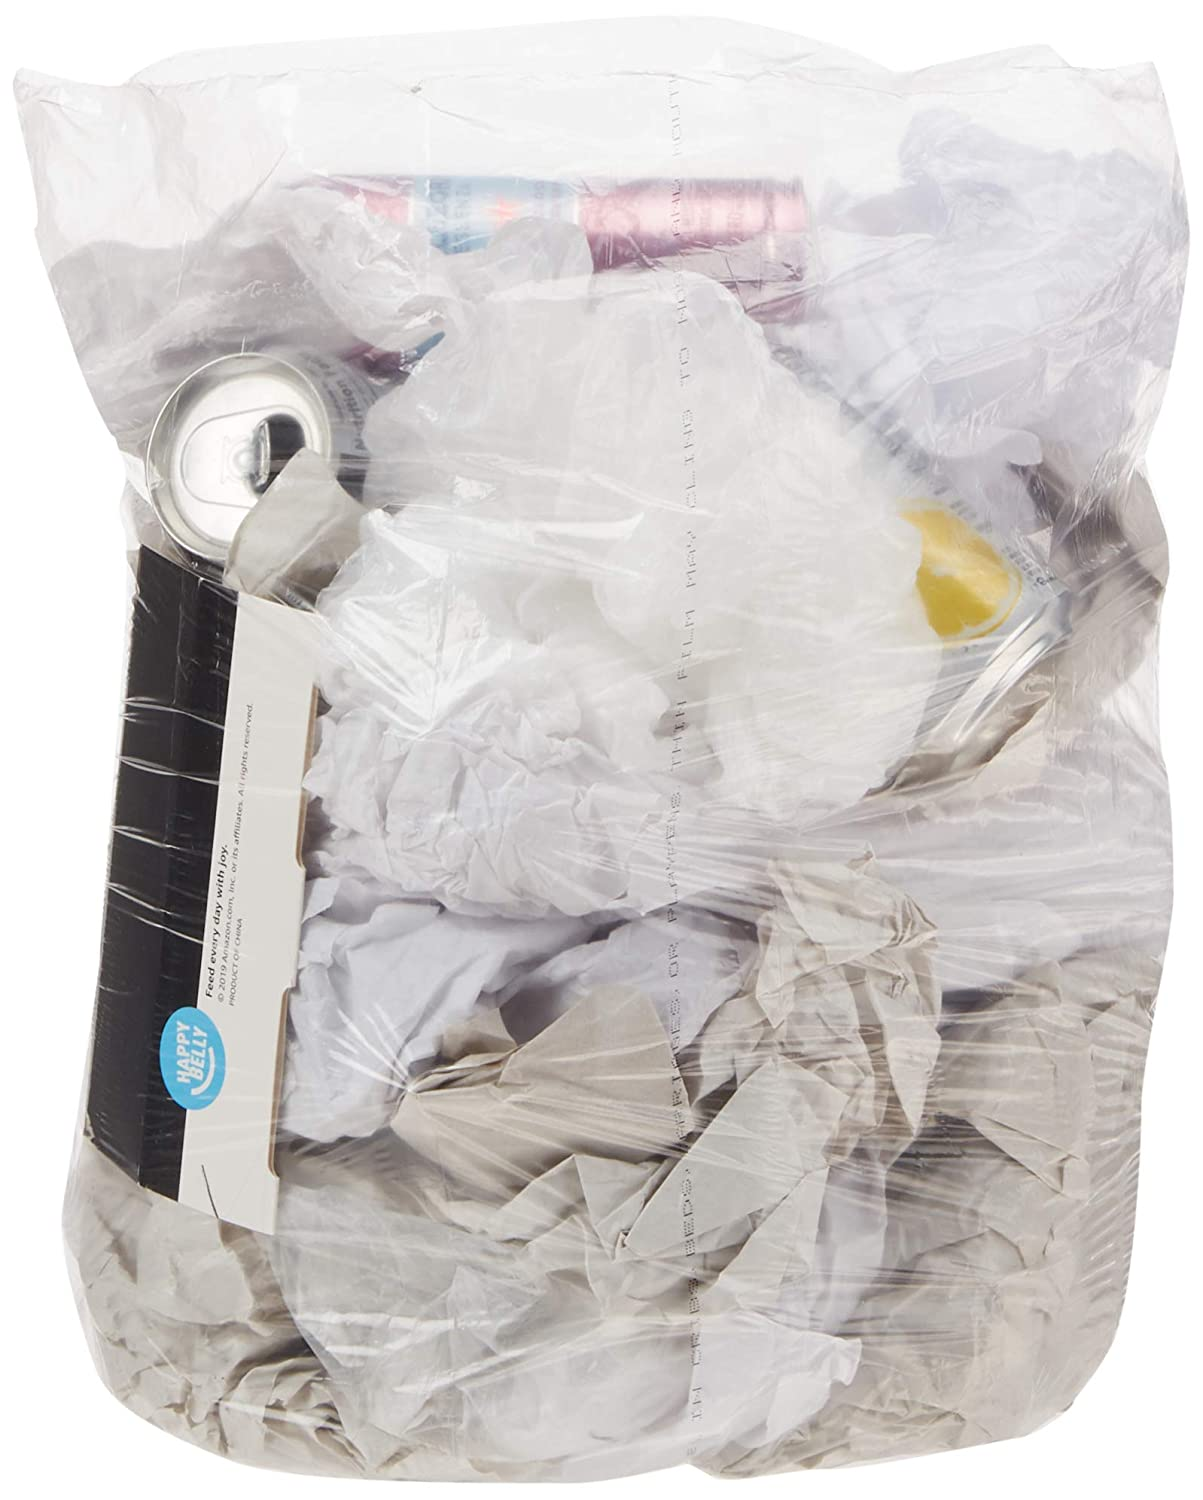 DHgateCommerical 2.6 Gallon Trash Bin Liners - 0.5 MIL - 110 Count